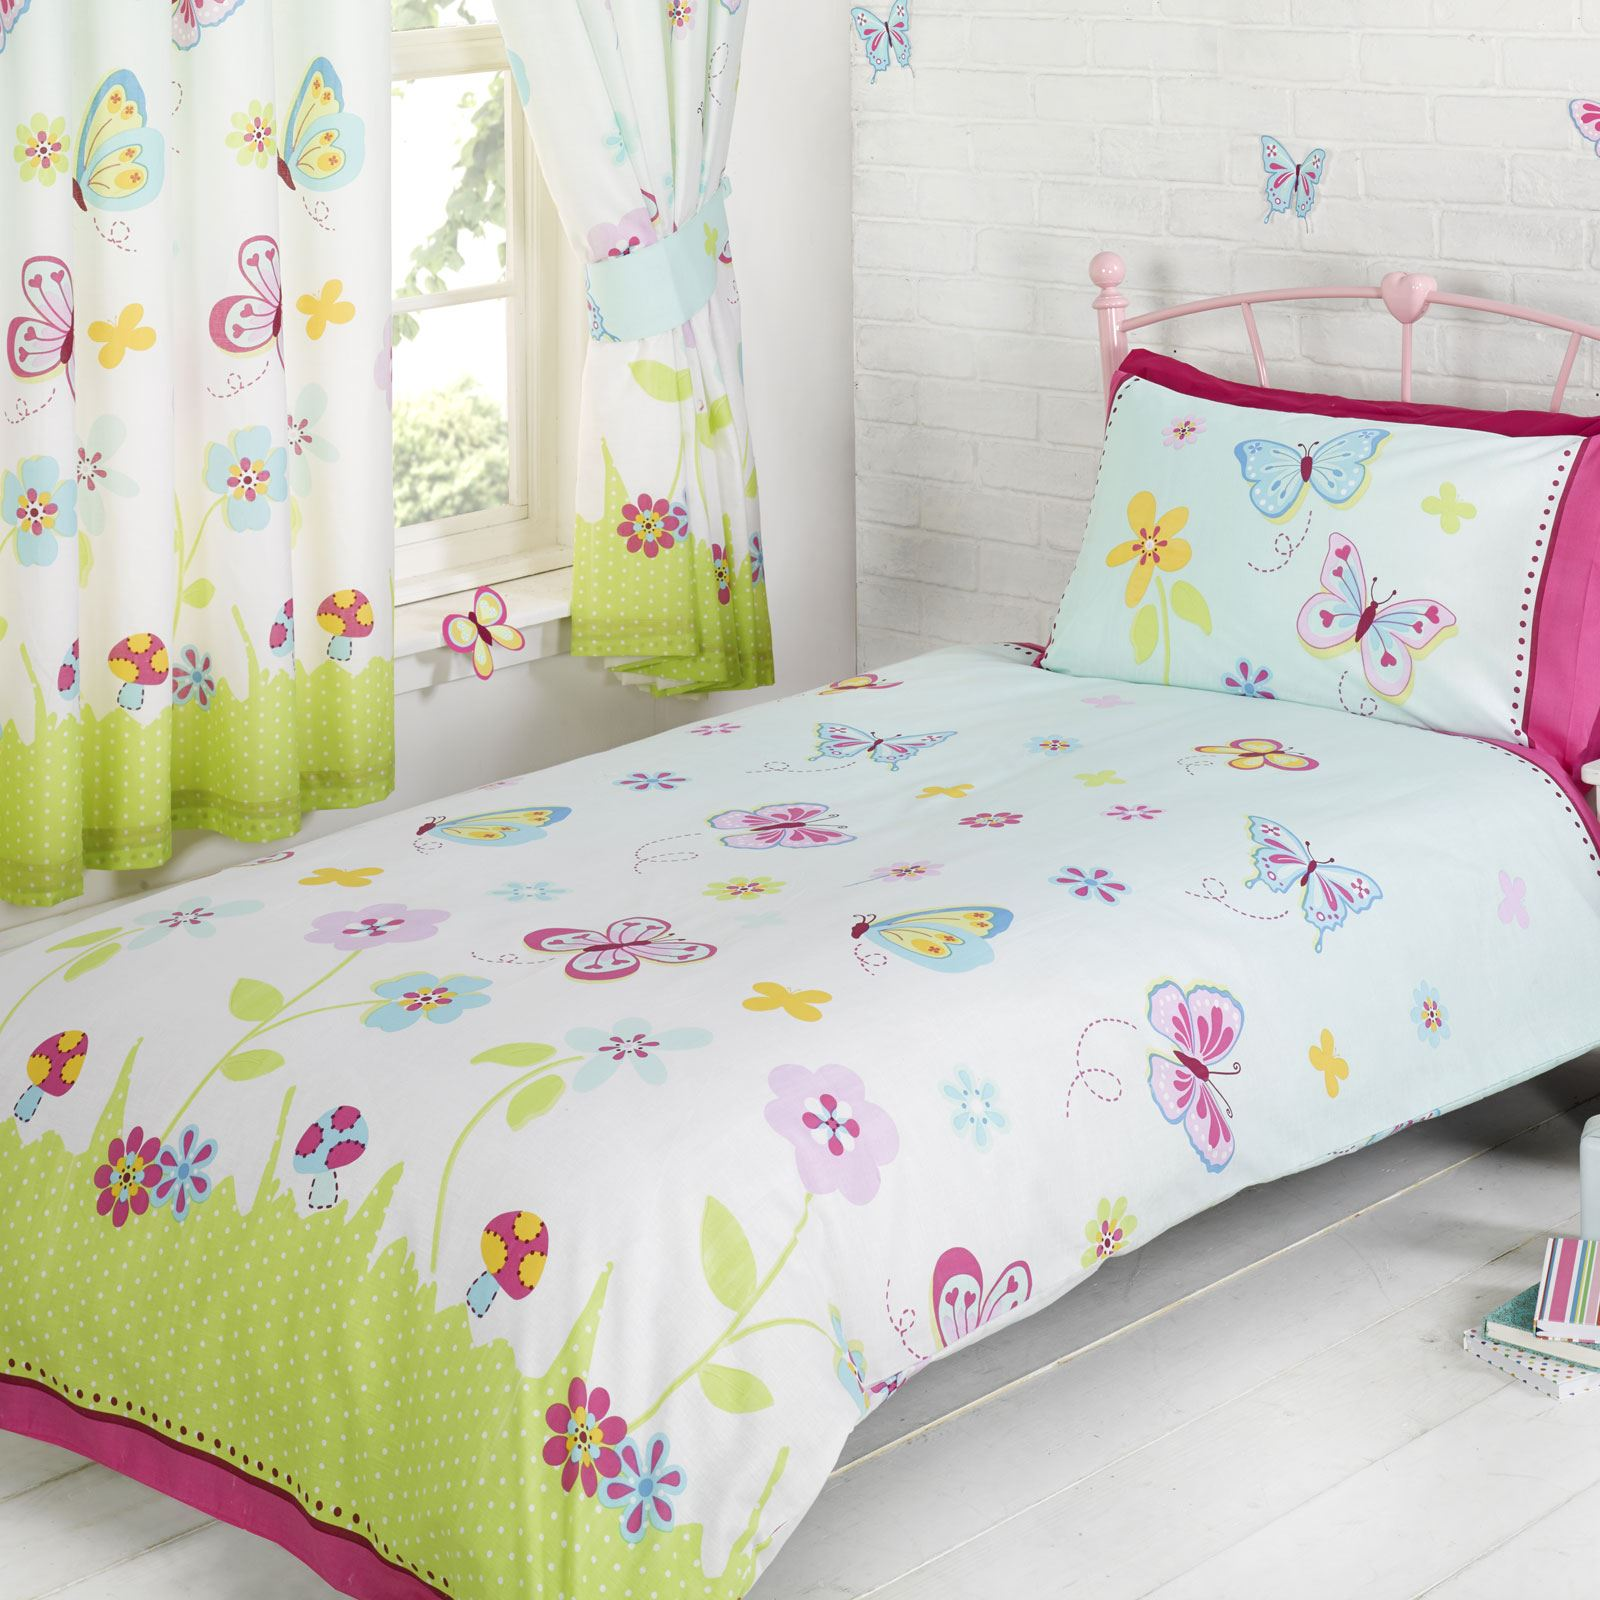 girls bedding single and double polycotton duvet covers various designs free p p ebay. Black Bedroom Furniture Sets. Home Design Ideas